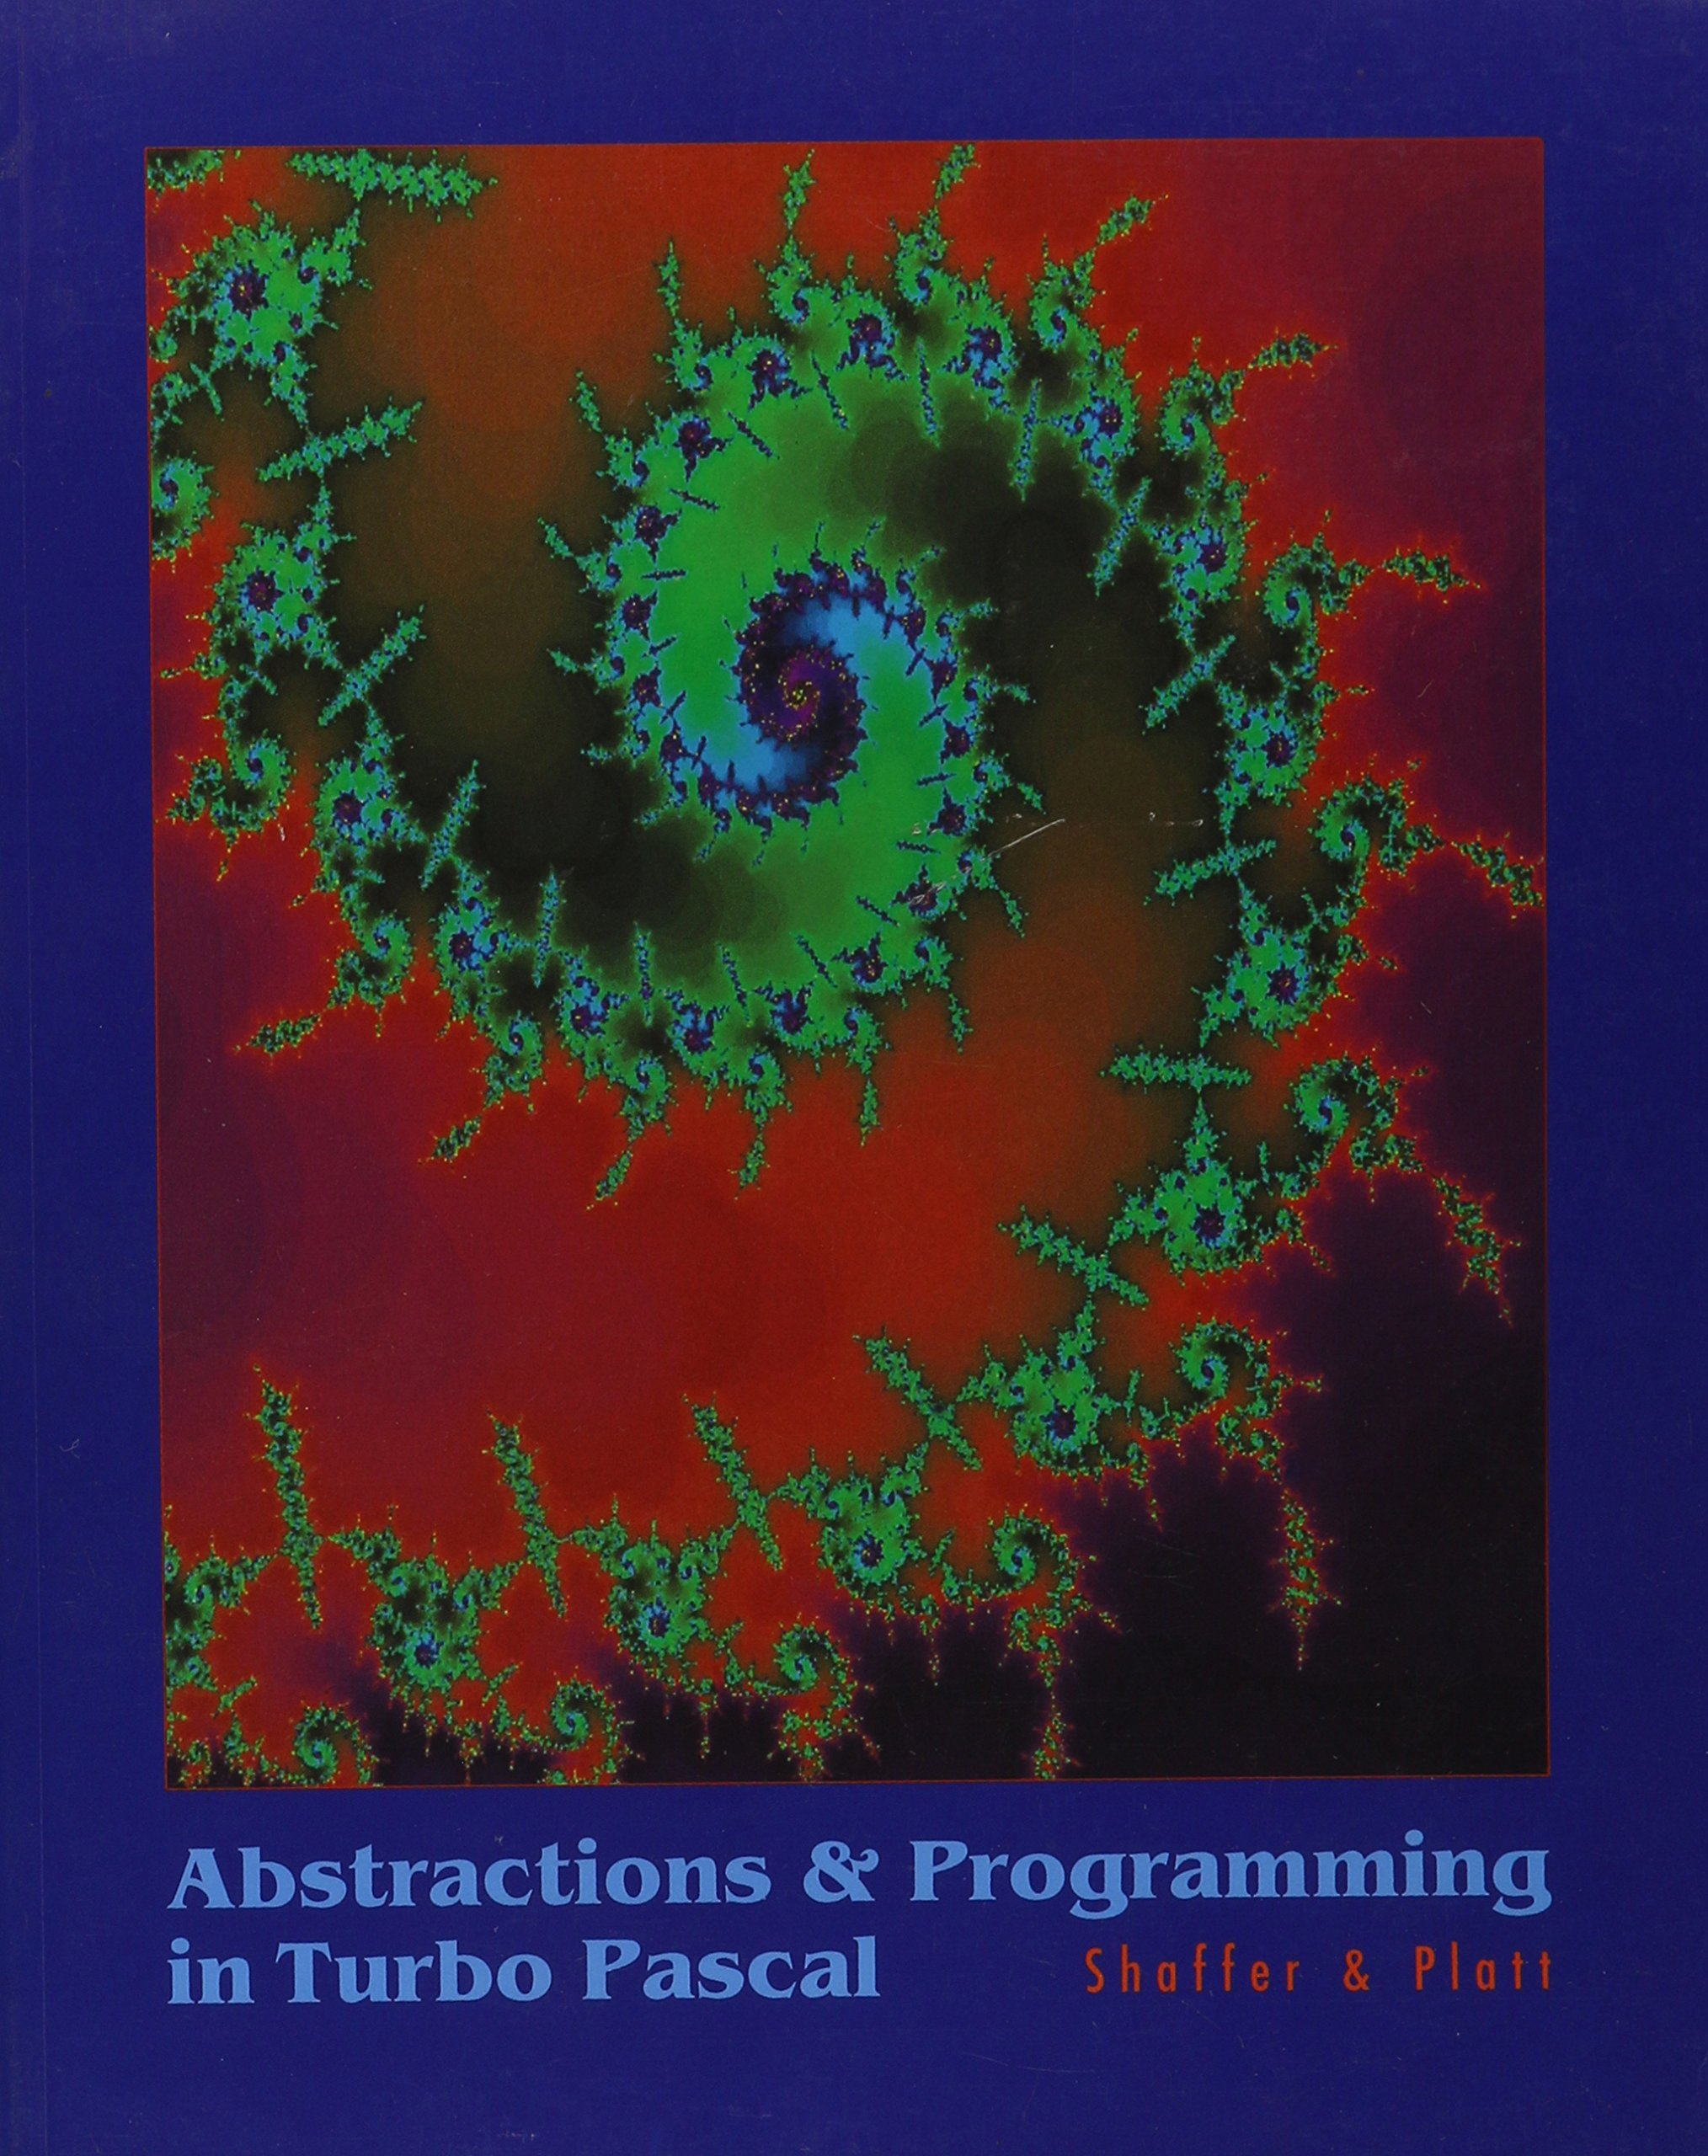 Abstractions and Programming in Turbo Pascal: Dale Shaffer, David C. Platt: 9780030963636: Amazon.com: Books